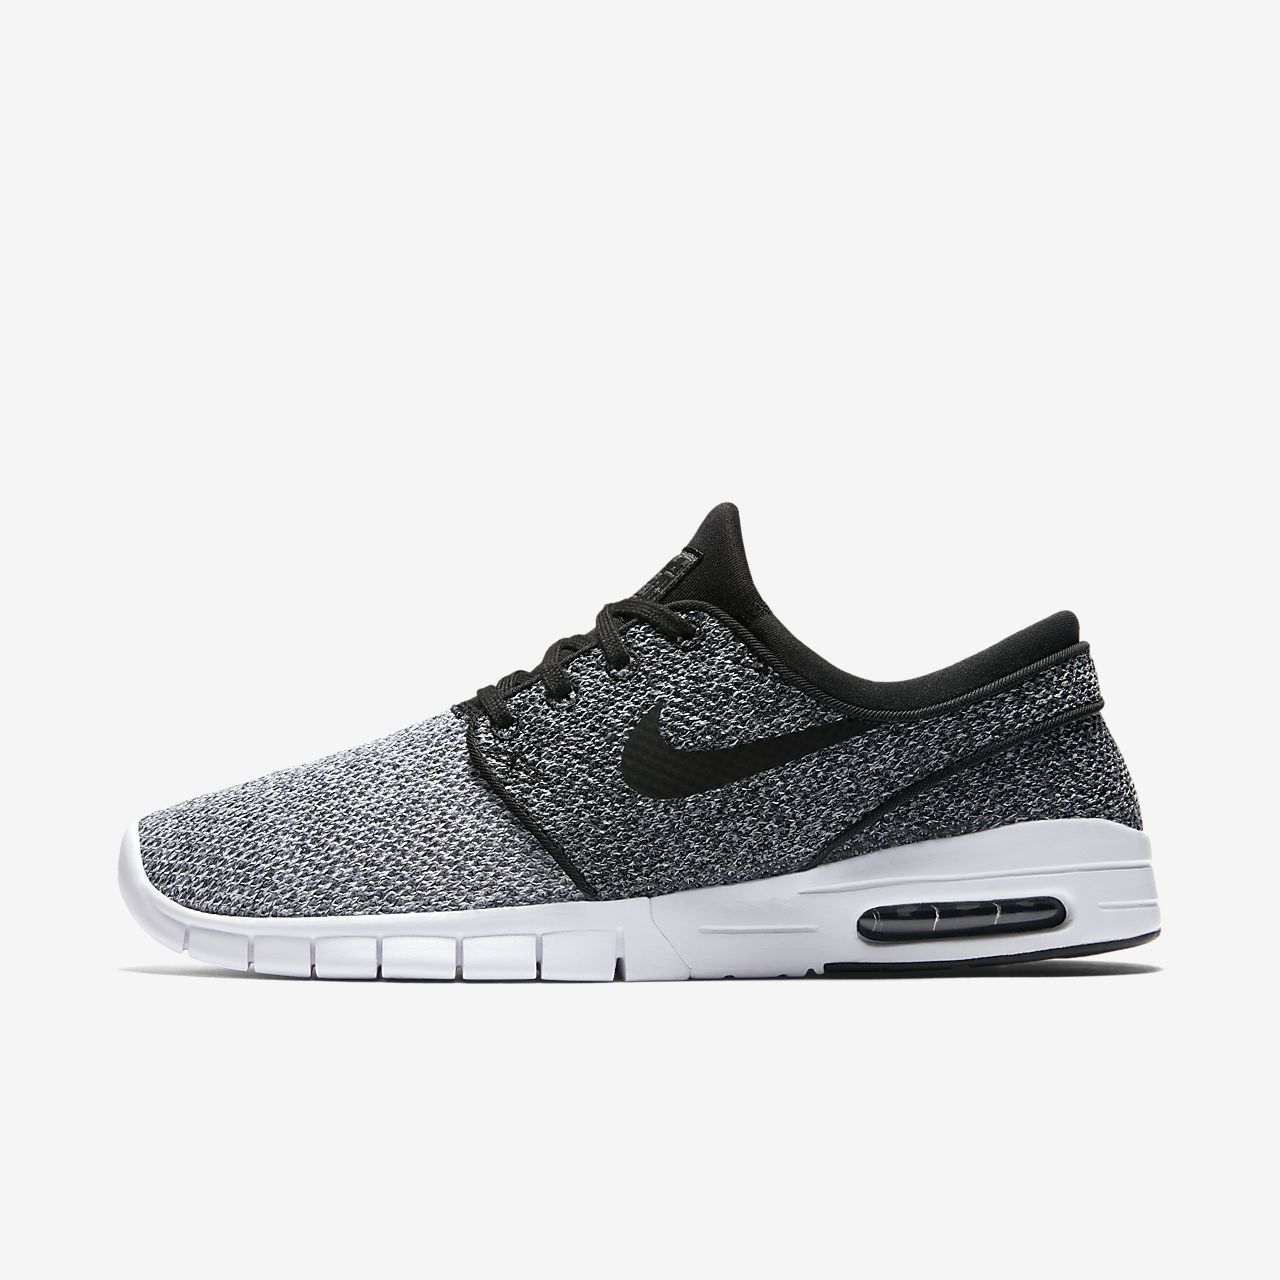 nike shoes 4 faster car anders 899490